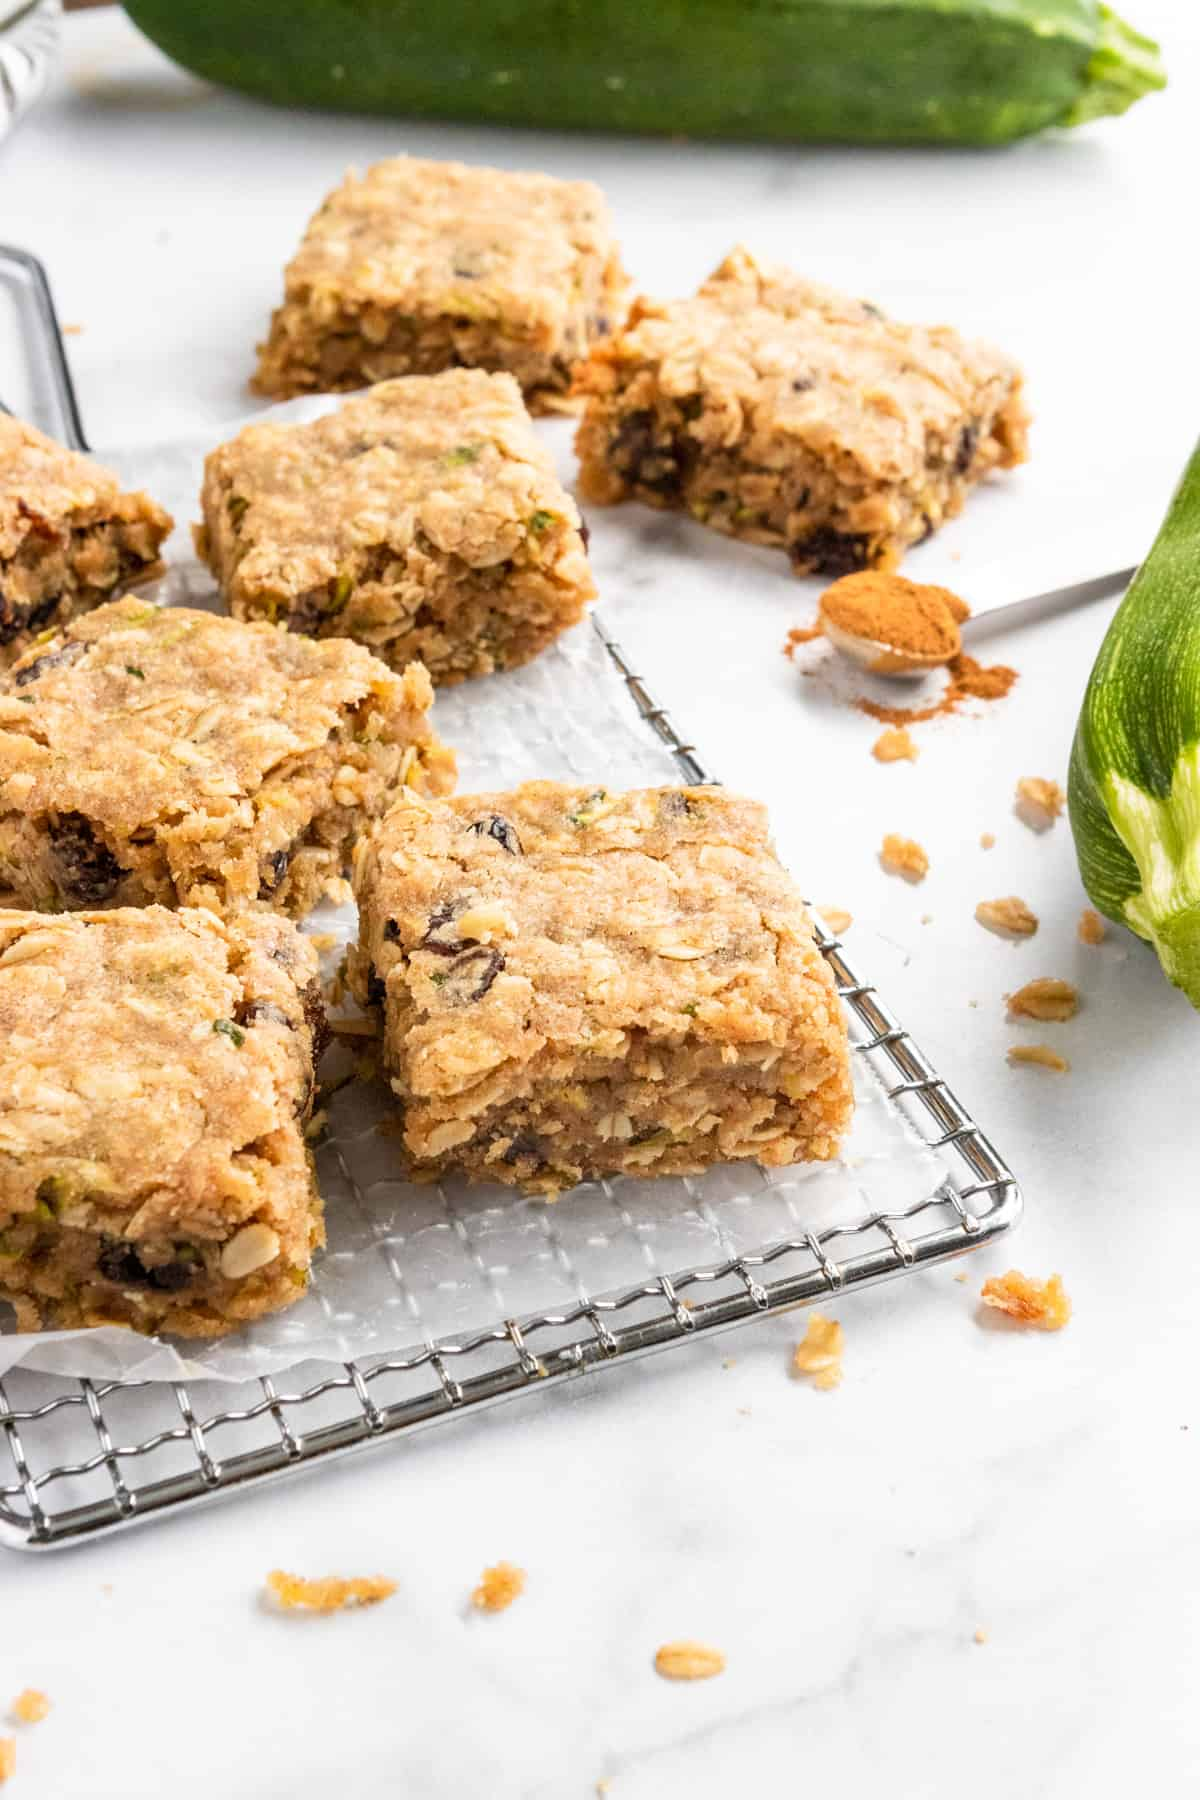 Zucchini bars on cooling rack with crumbs.